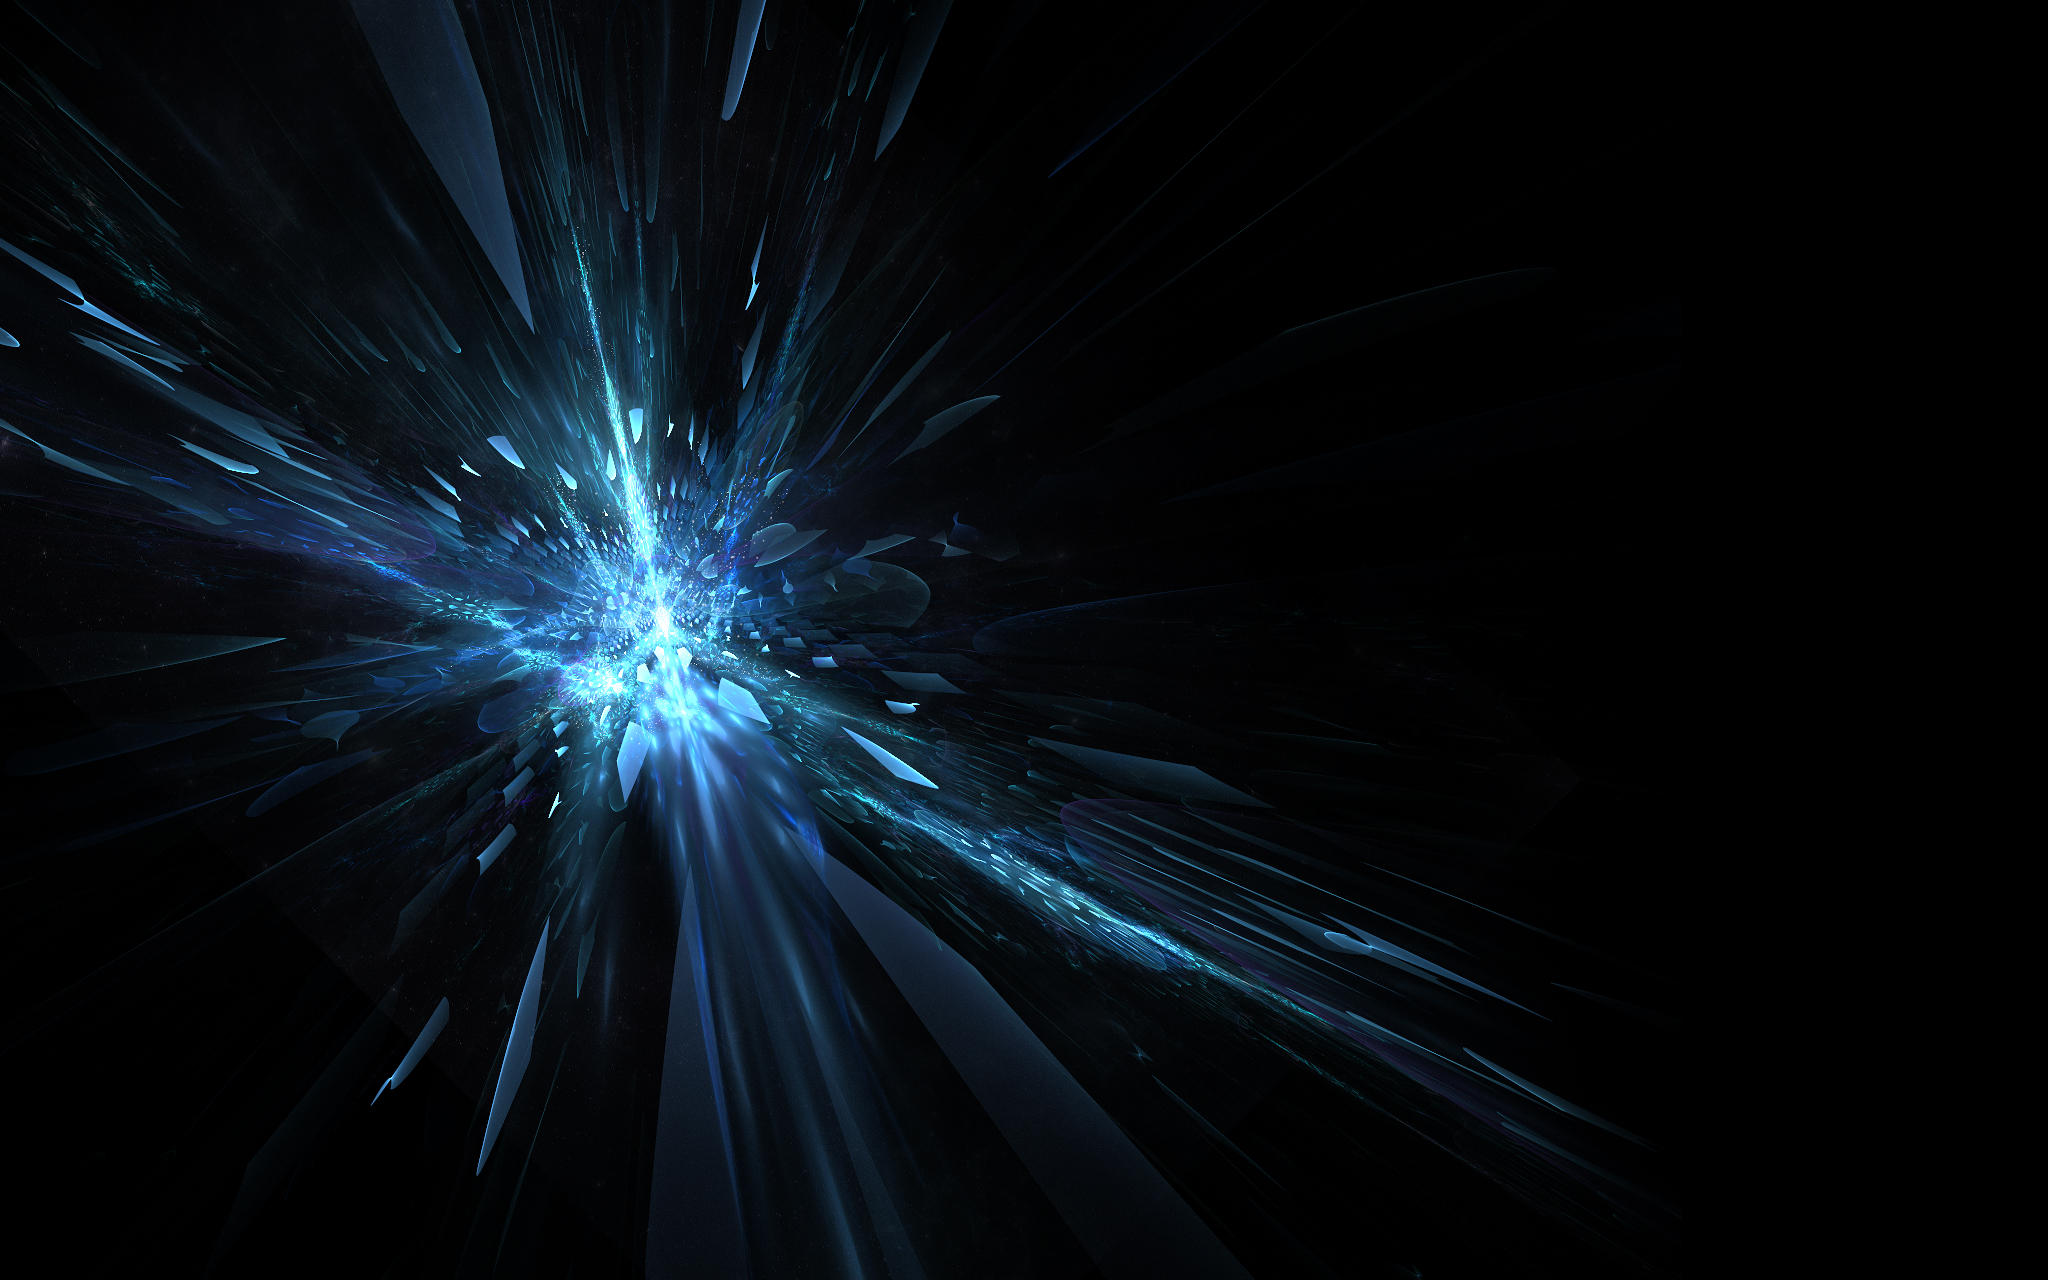 Best 3d Amazing Wallpapers Fractal Explosion I Wallpaper By Ineedfire On Deviantart